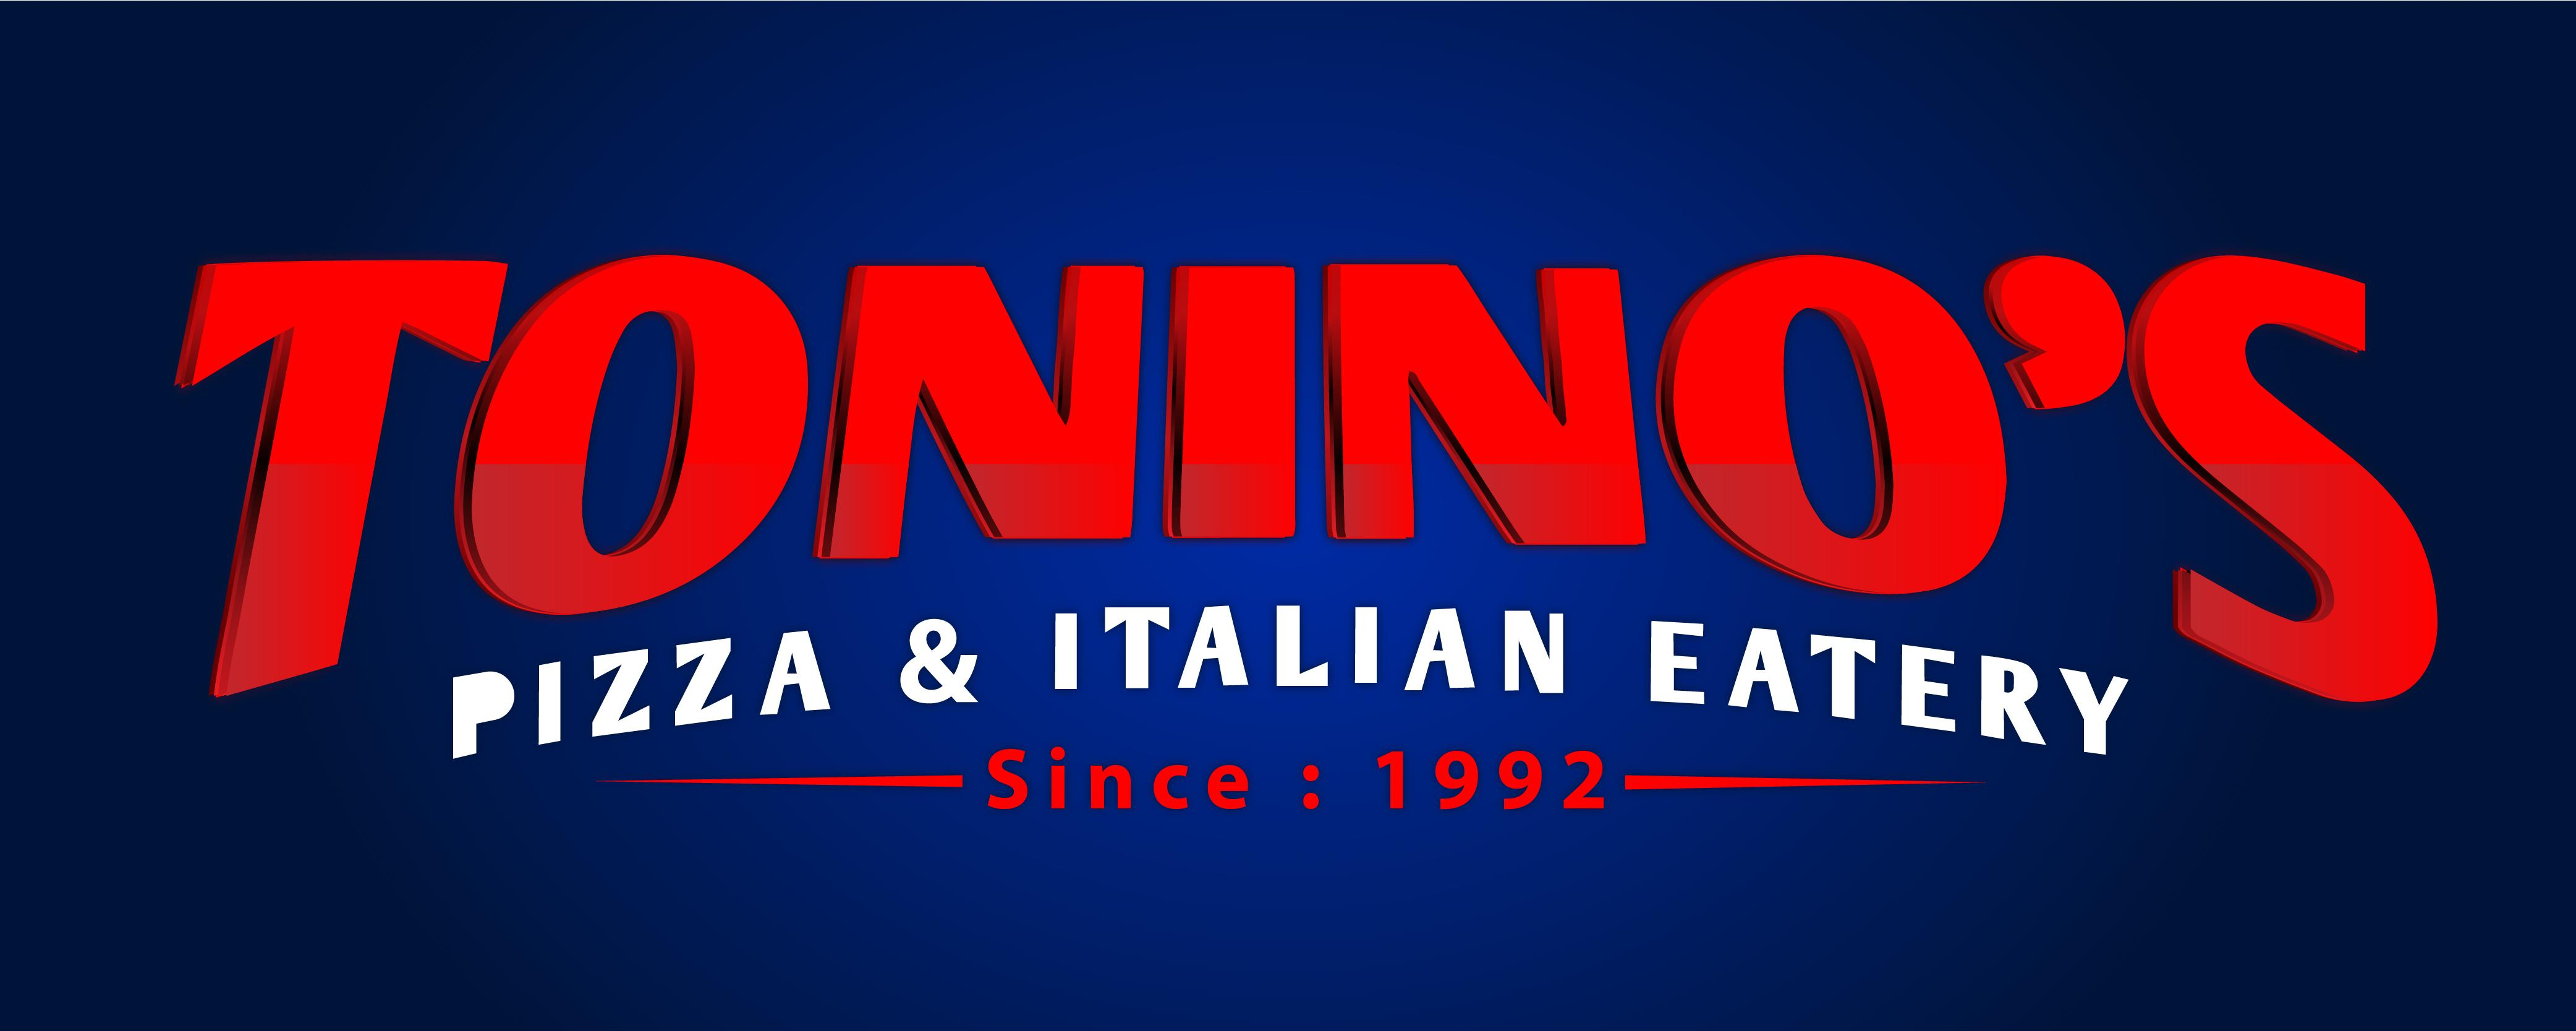 Tonino's Pizza & Italian Eatery (Since 1992)